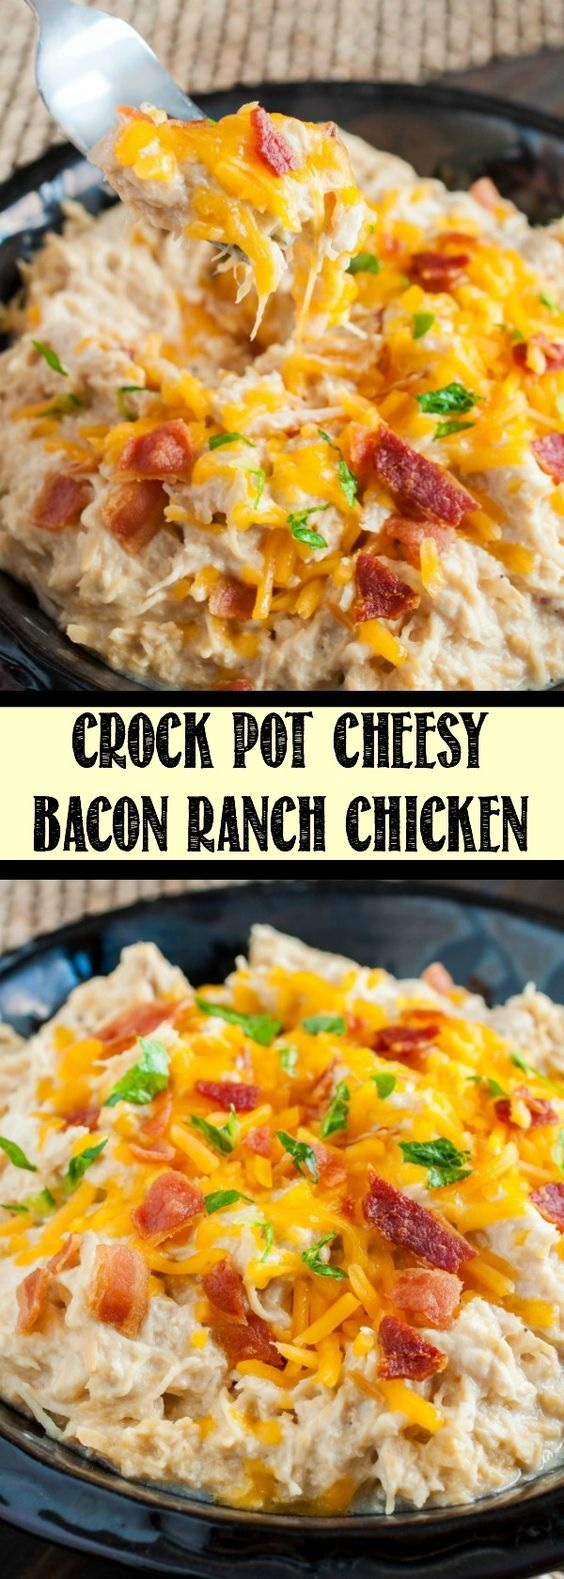 Crock Pot Cheesy Bacon Ranch Chicken